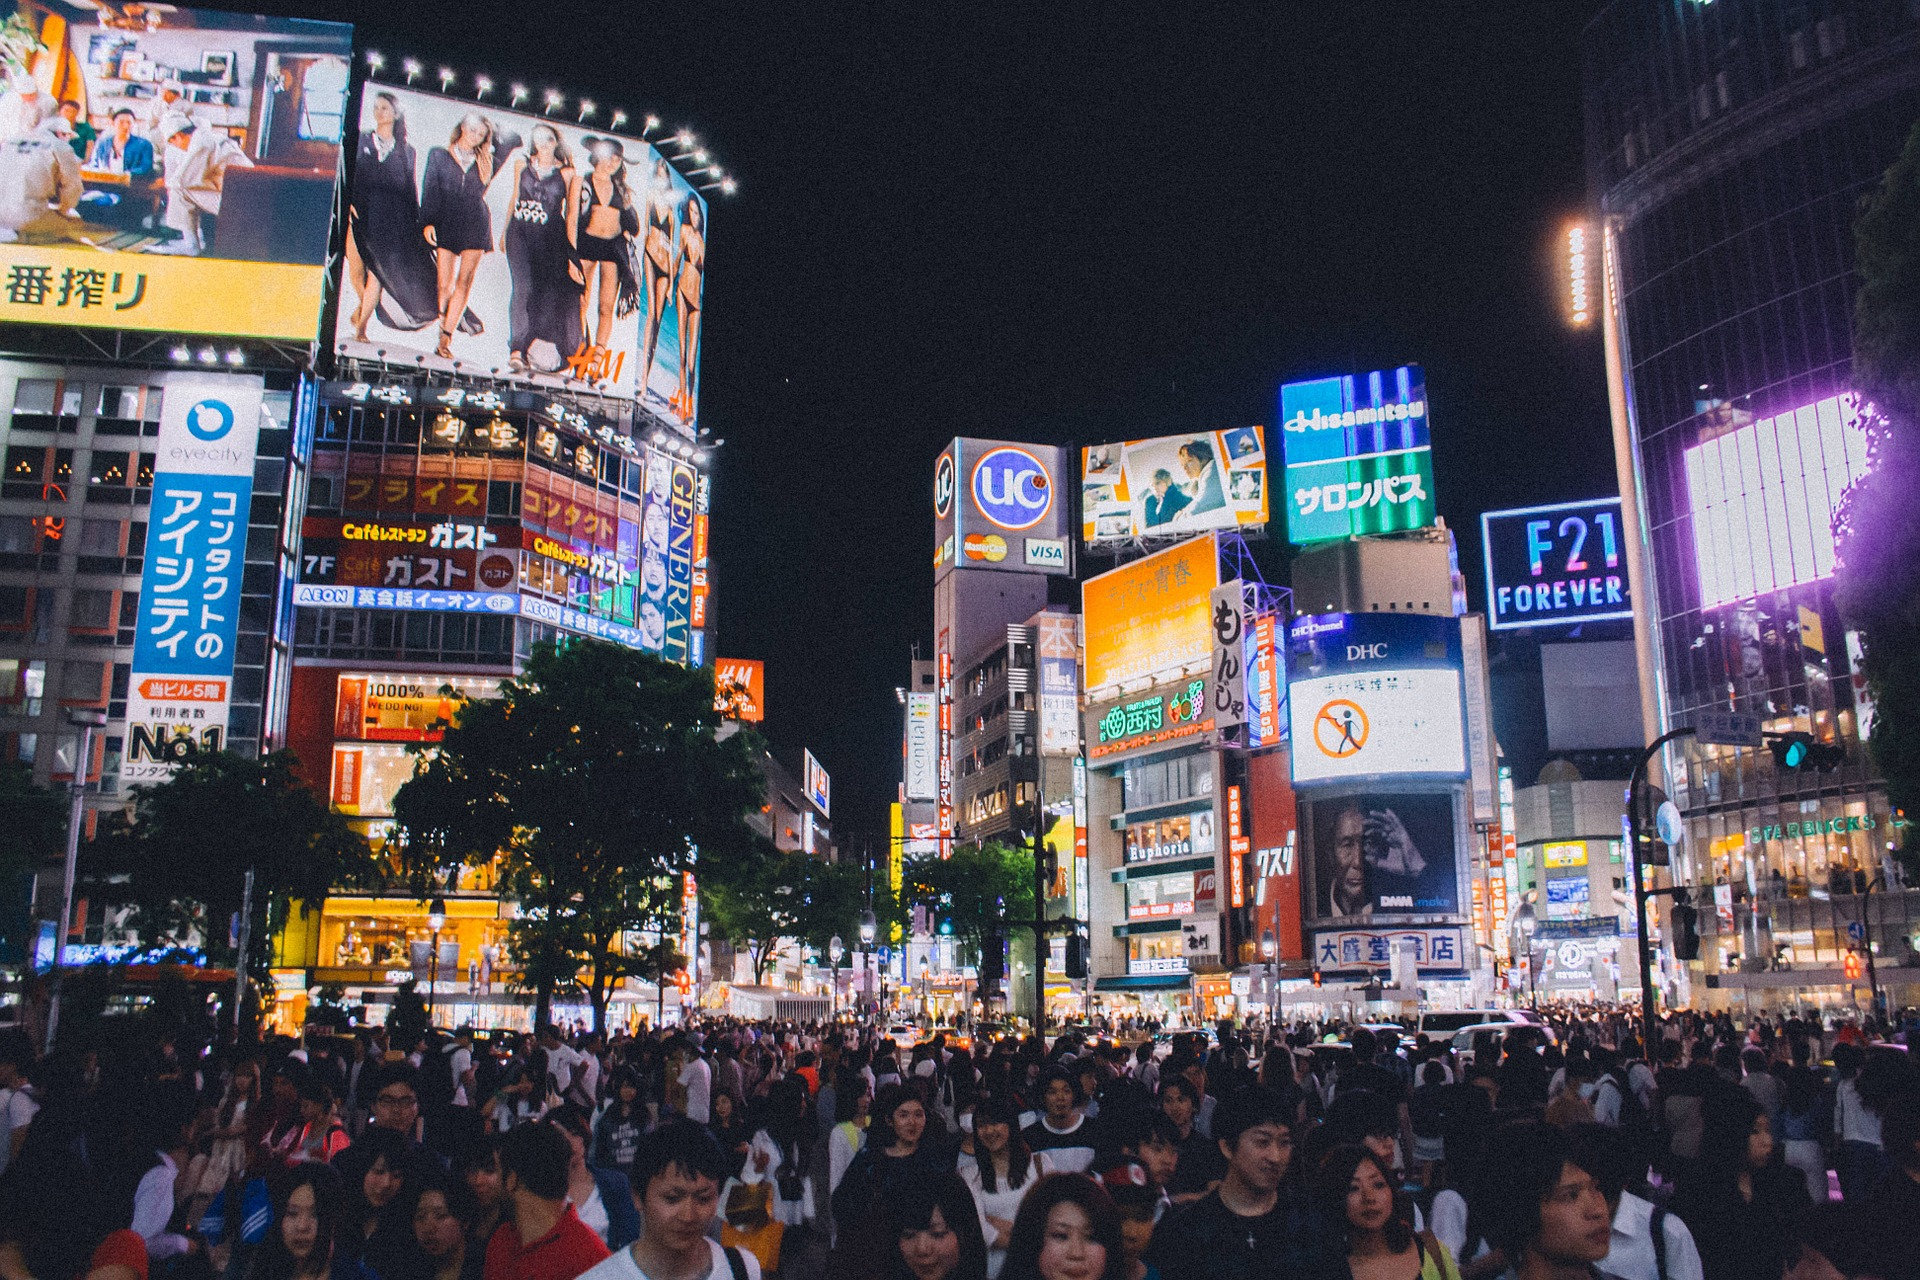 photo of crowded shibuya crossing at night with advertisements